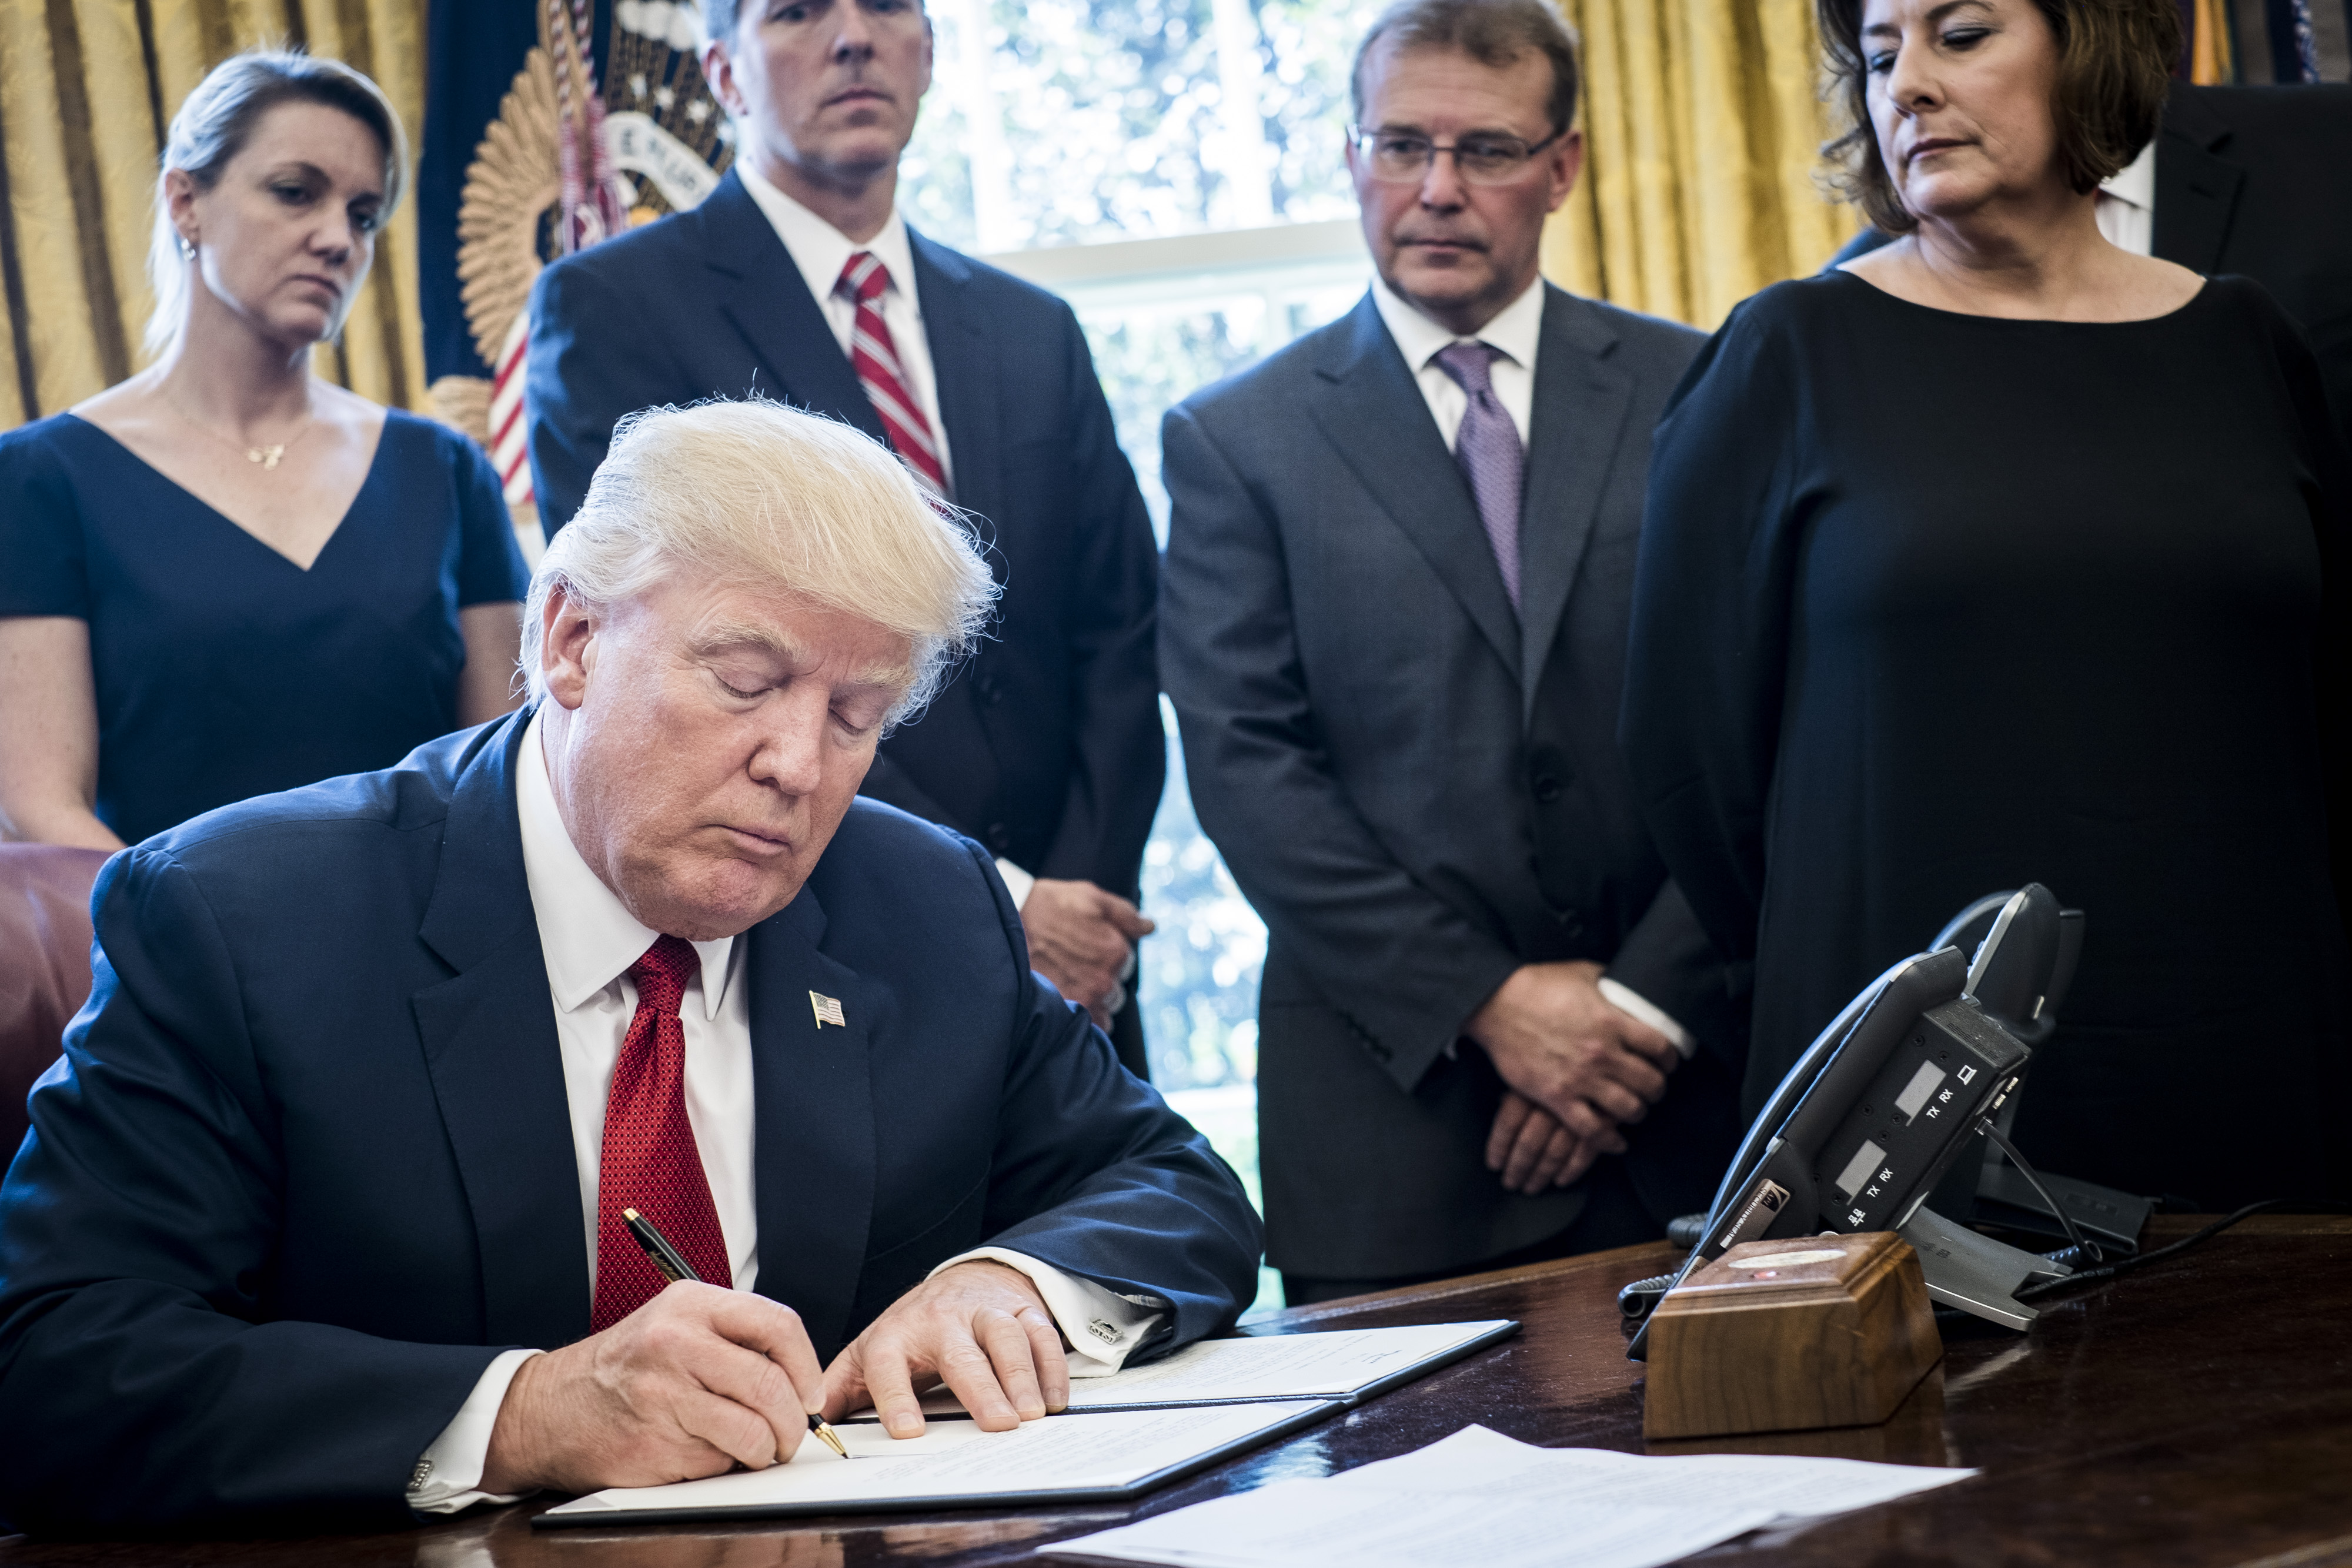 President Trump Signs Memo On Investigation Of Steel Imports